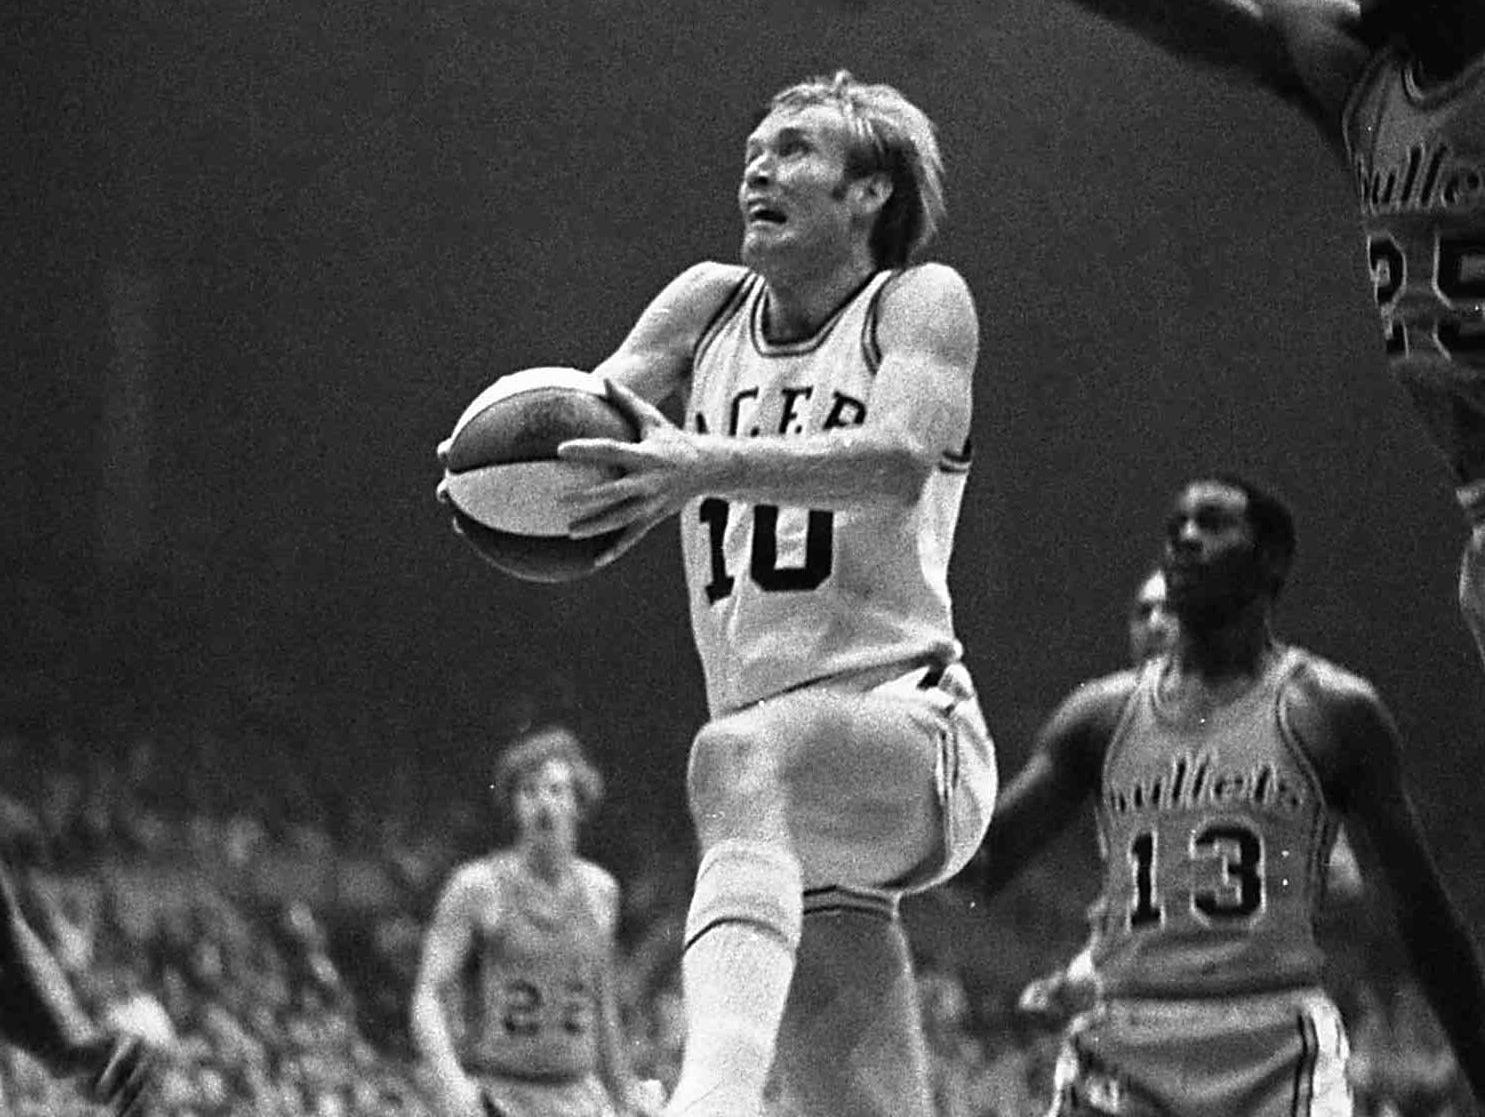 Rick Mount averaged 11.8 points per game in five injury-plagued seasons for the Pacers.